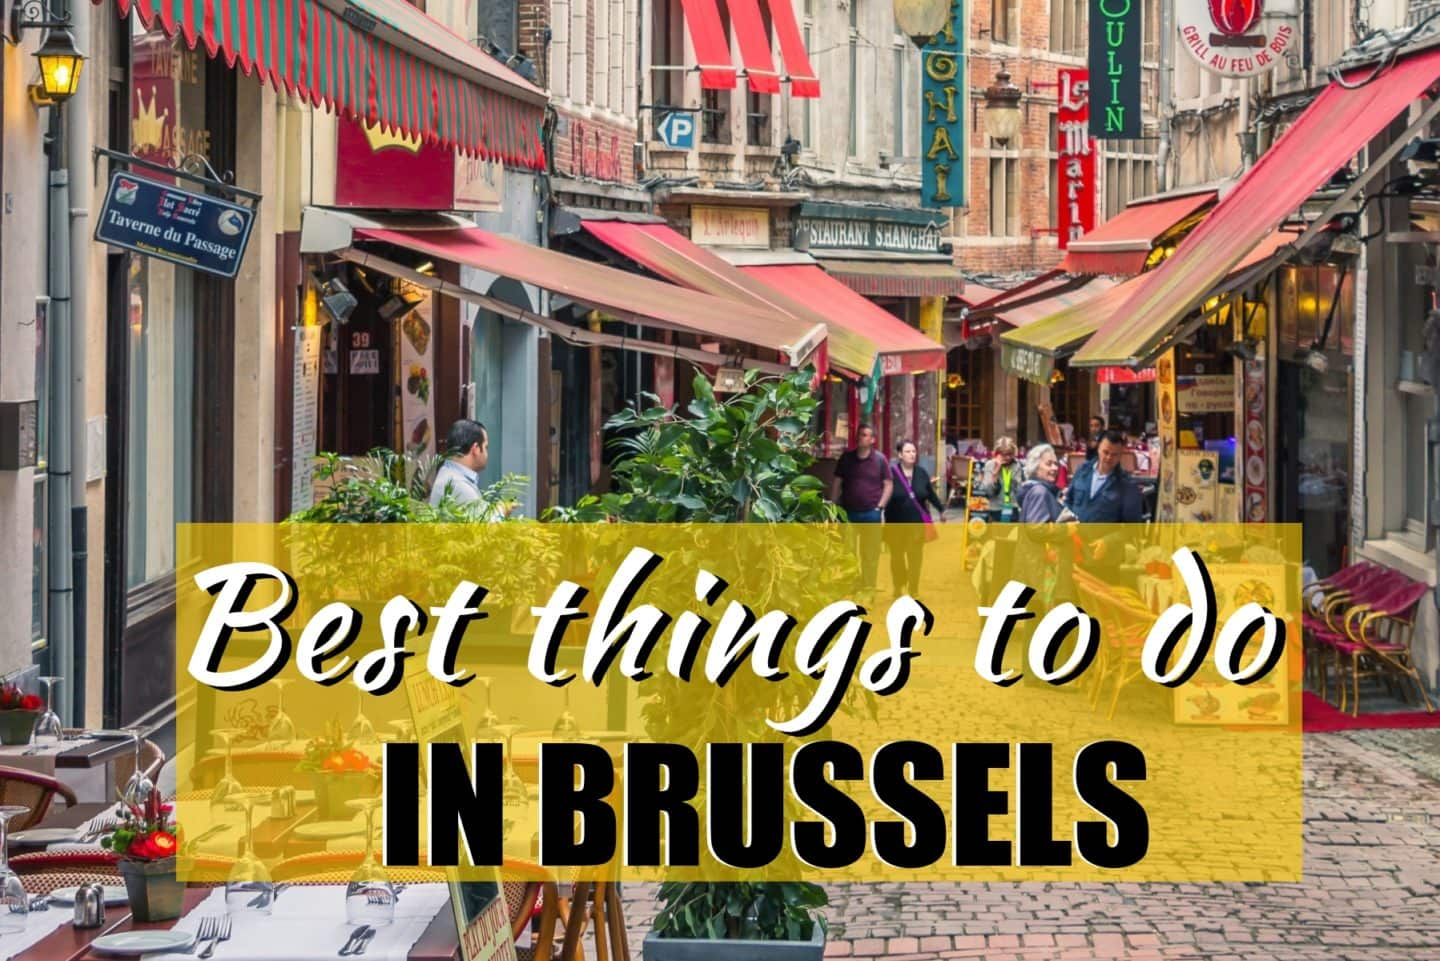 #europetravelguide Your ultimate guide on what to do in Brussels, Belgium on a short trip. Check out the Comic Strip, Atomium, Mini Europe and more. I've rounded up the best things to see and activities to do in Belgium for free or cheap! #europetrip #europetraveltips